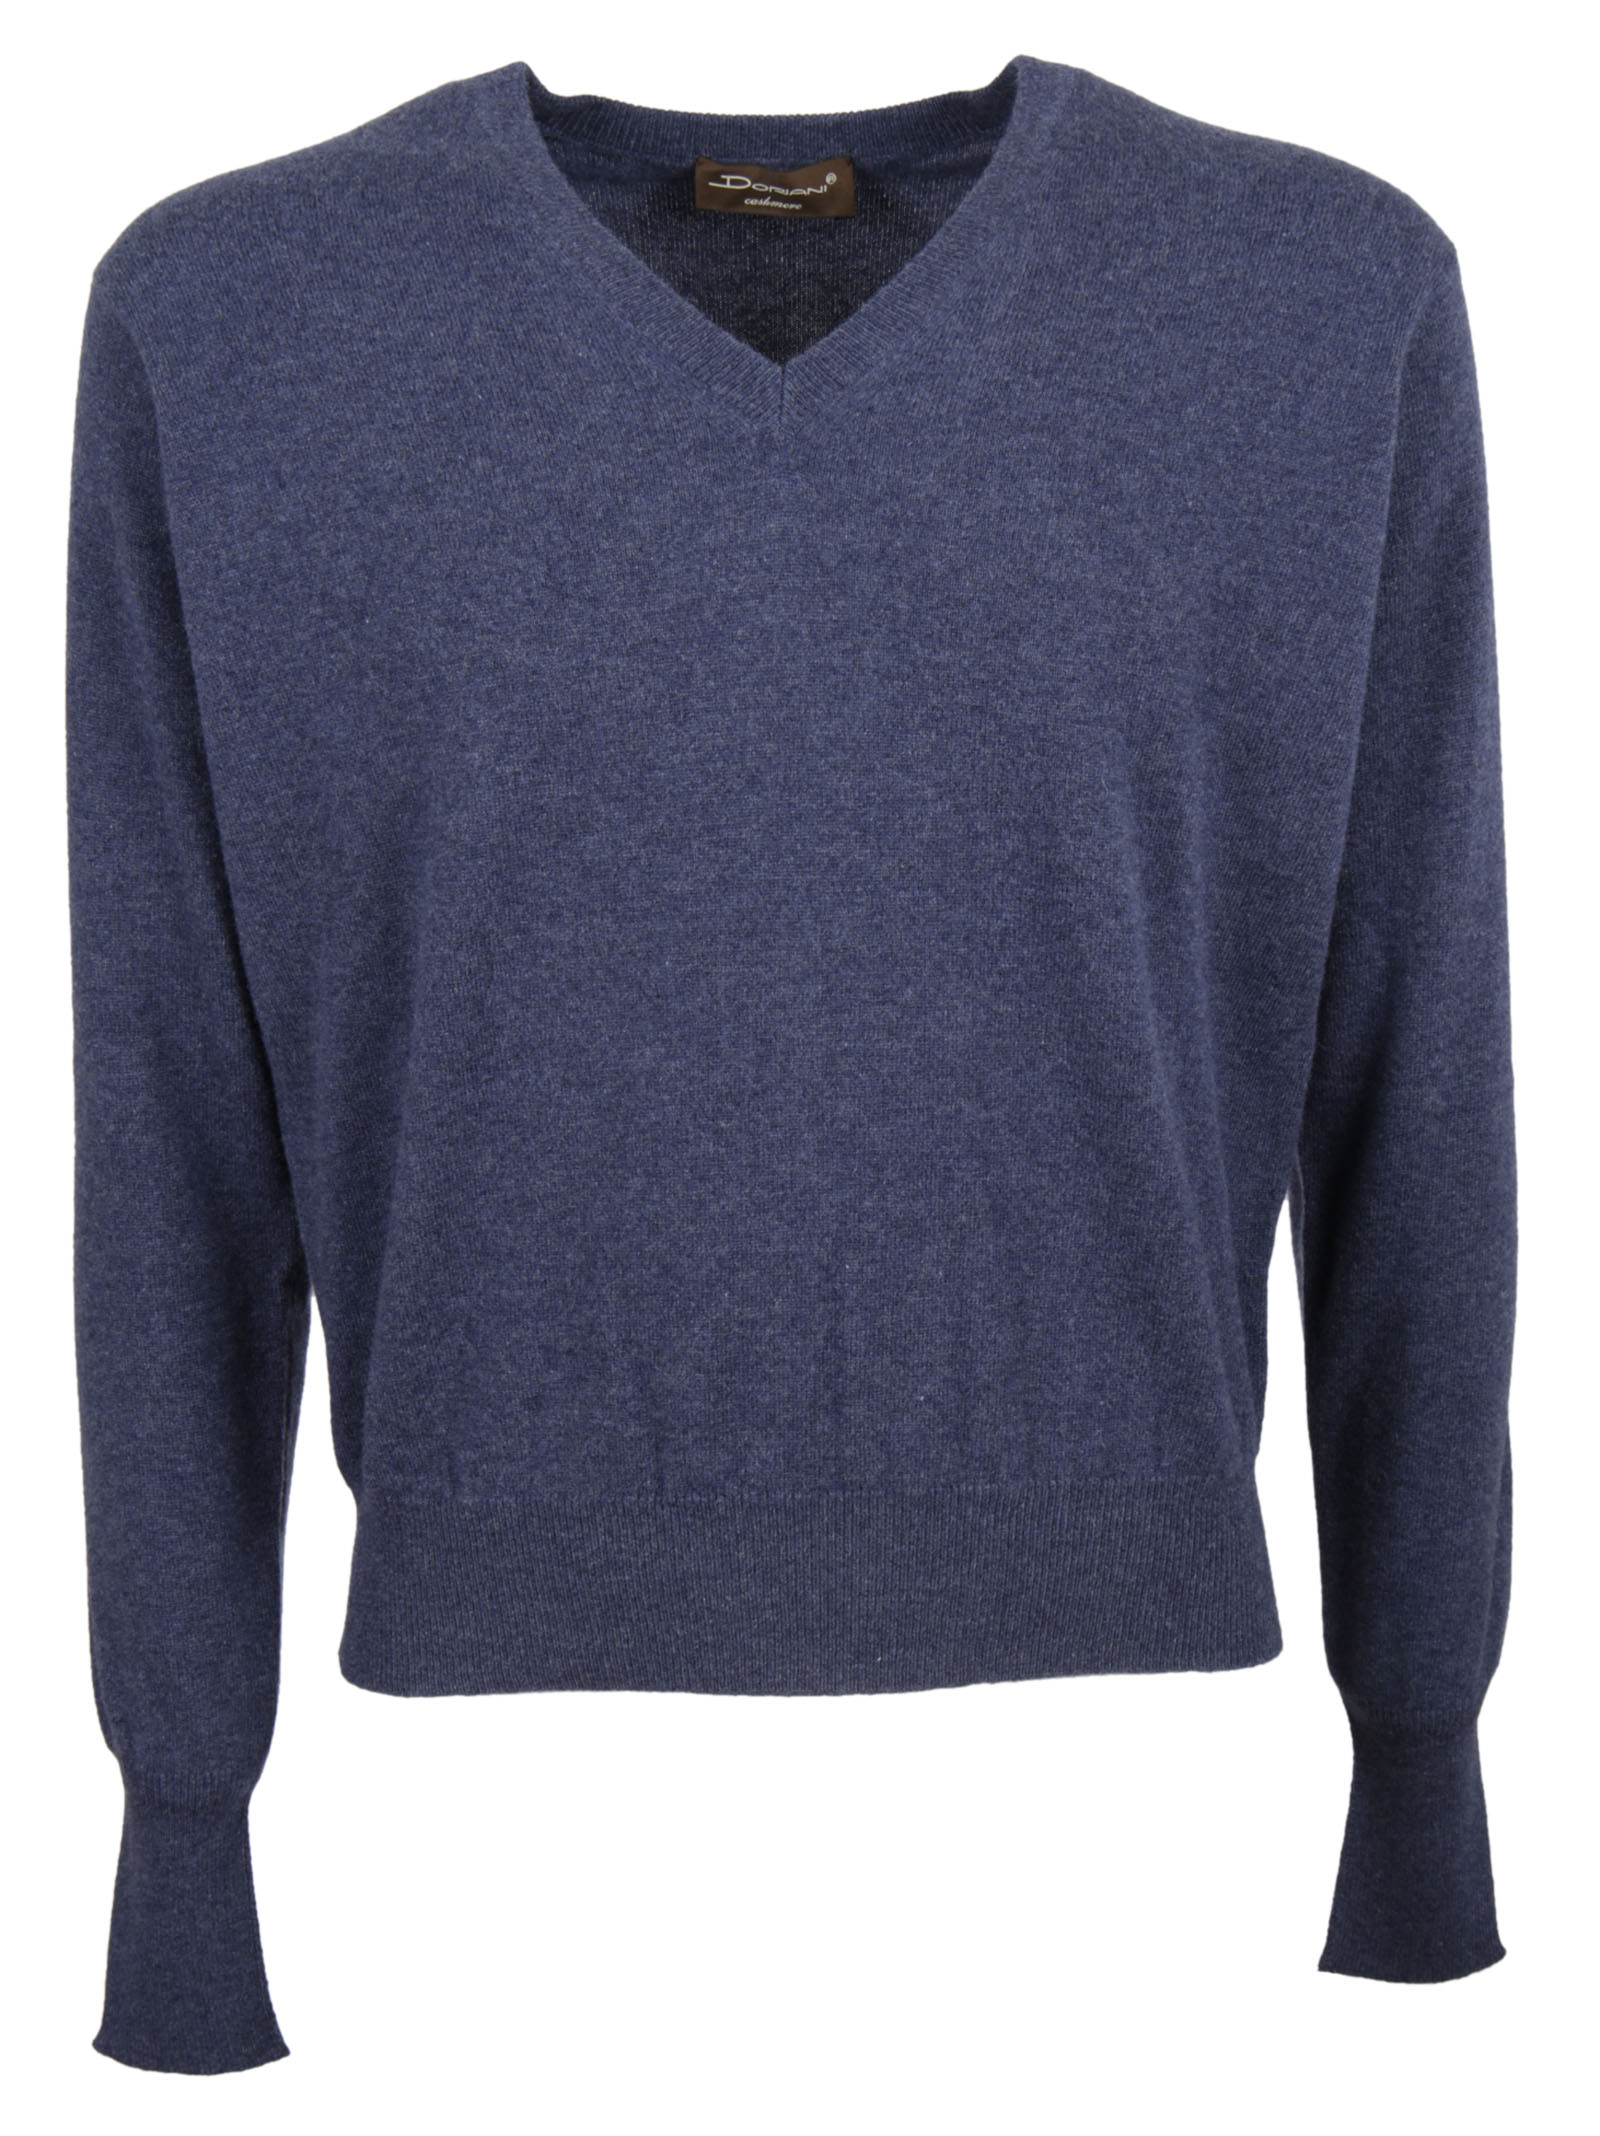 Doriani Doriani V-neck Sweater